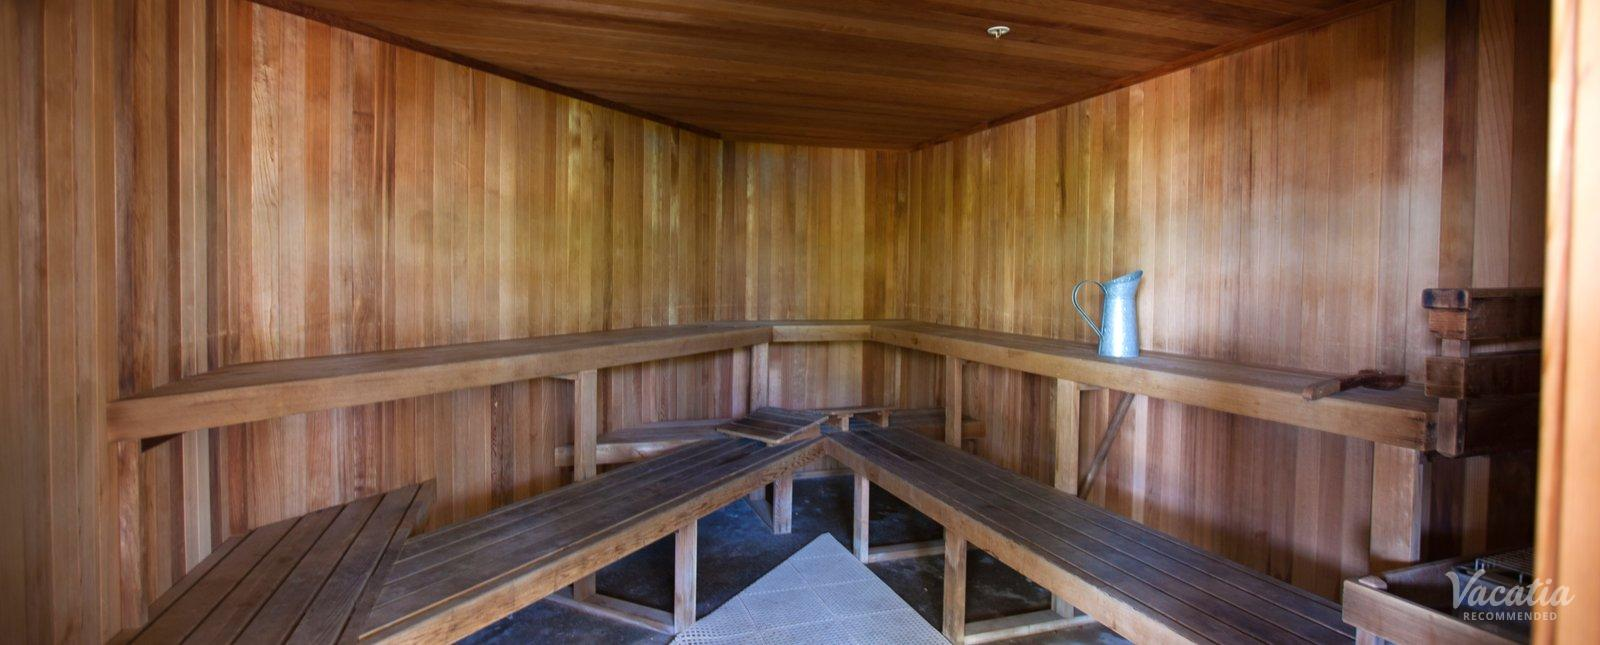 Caribe Cove Resort Sauna